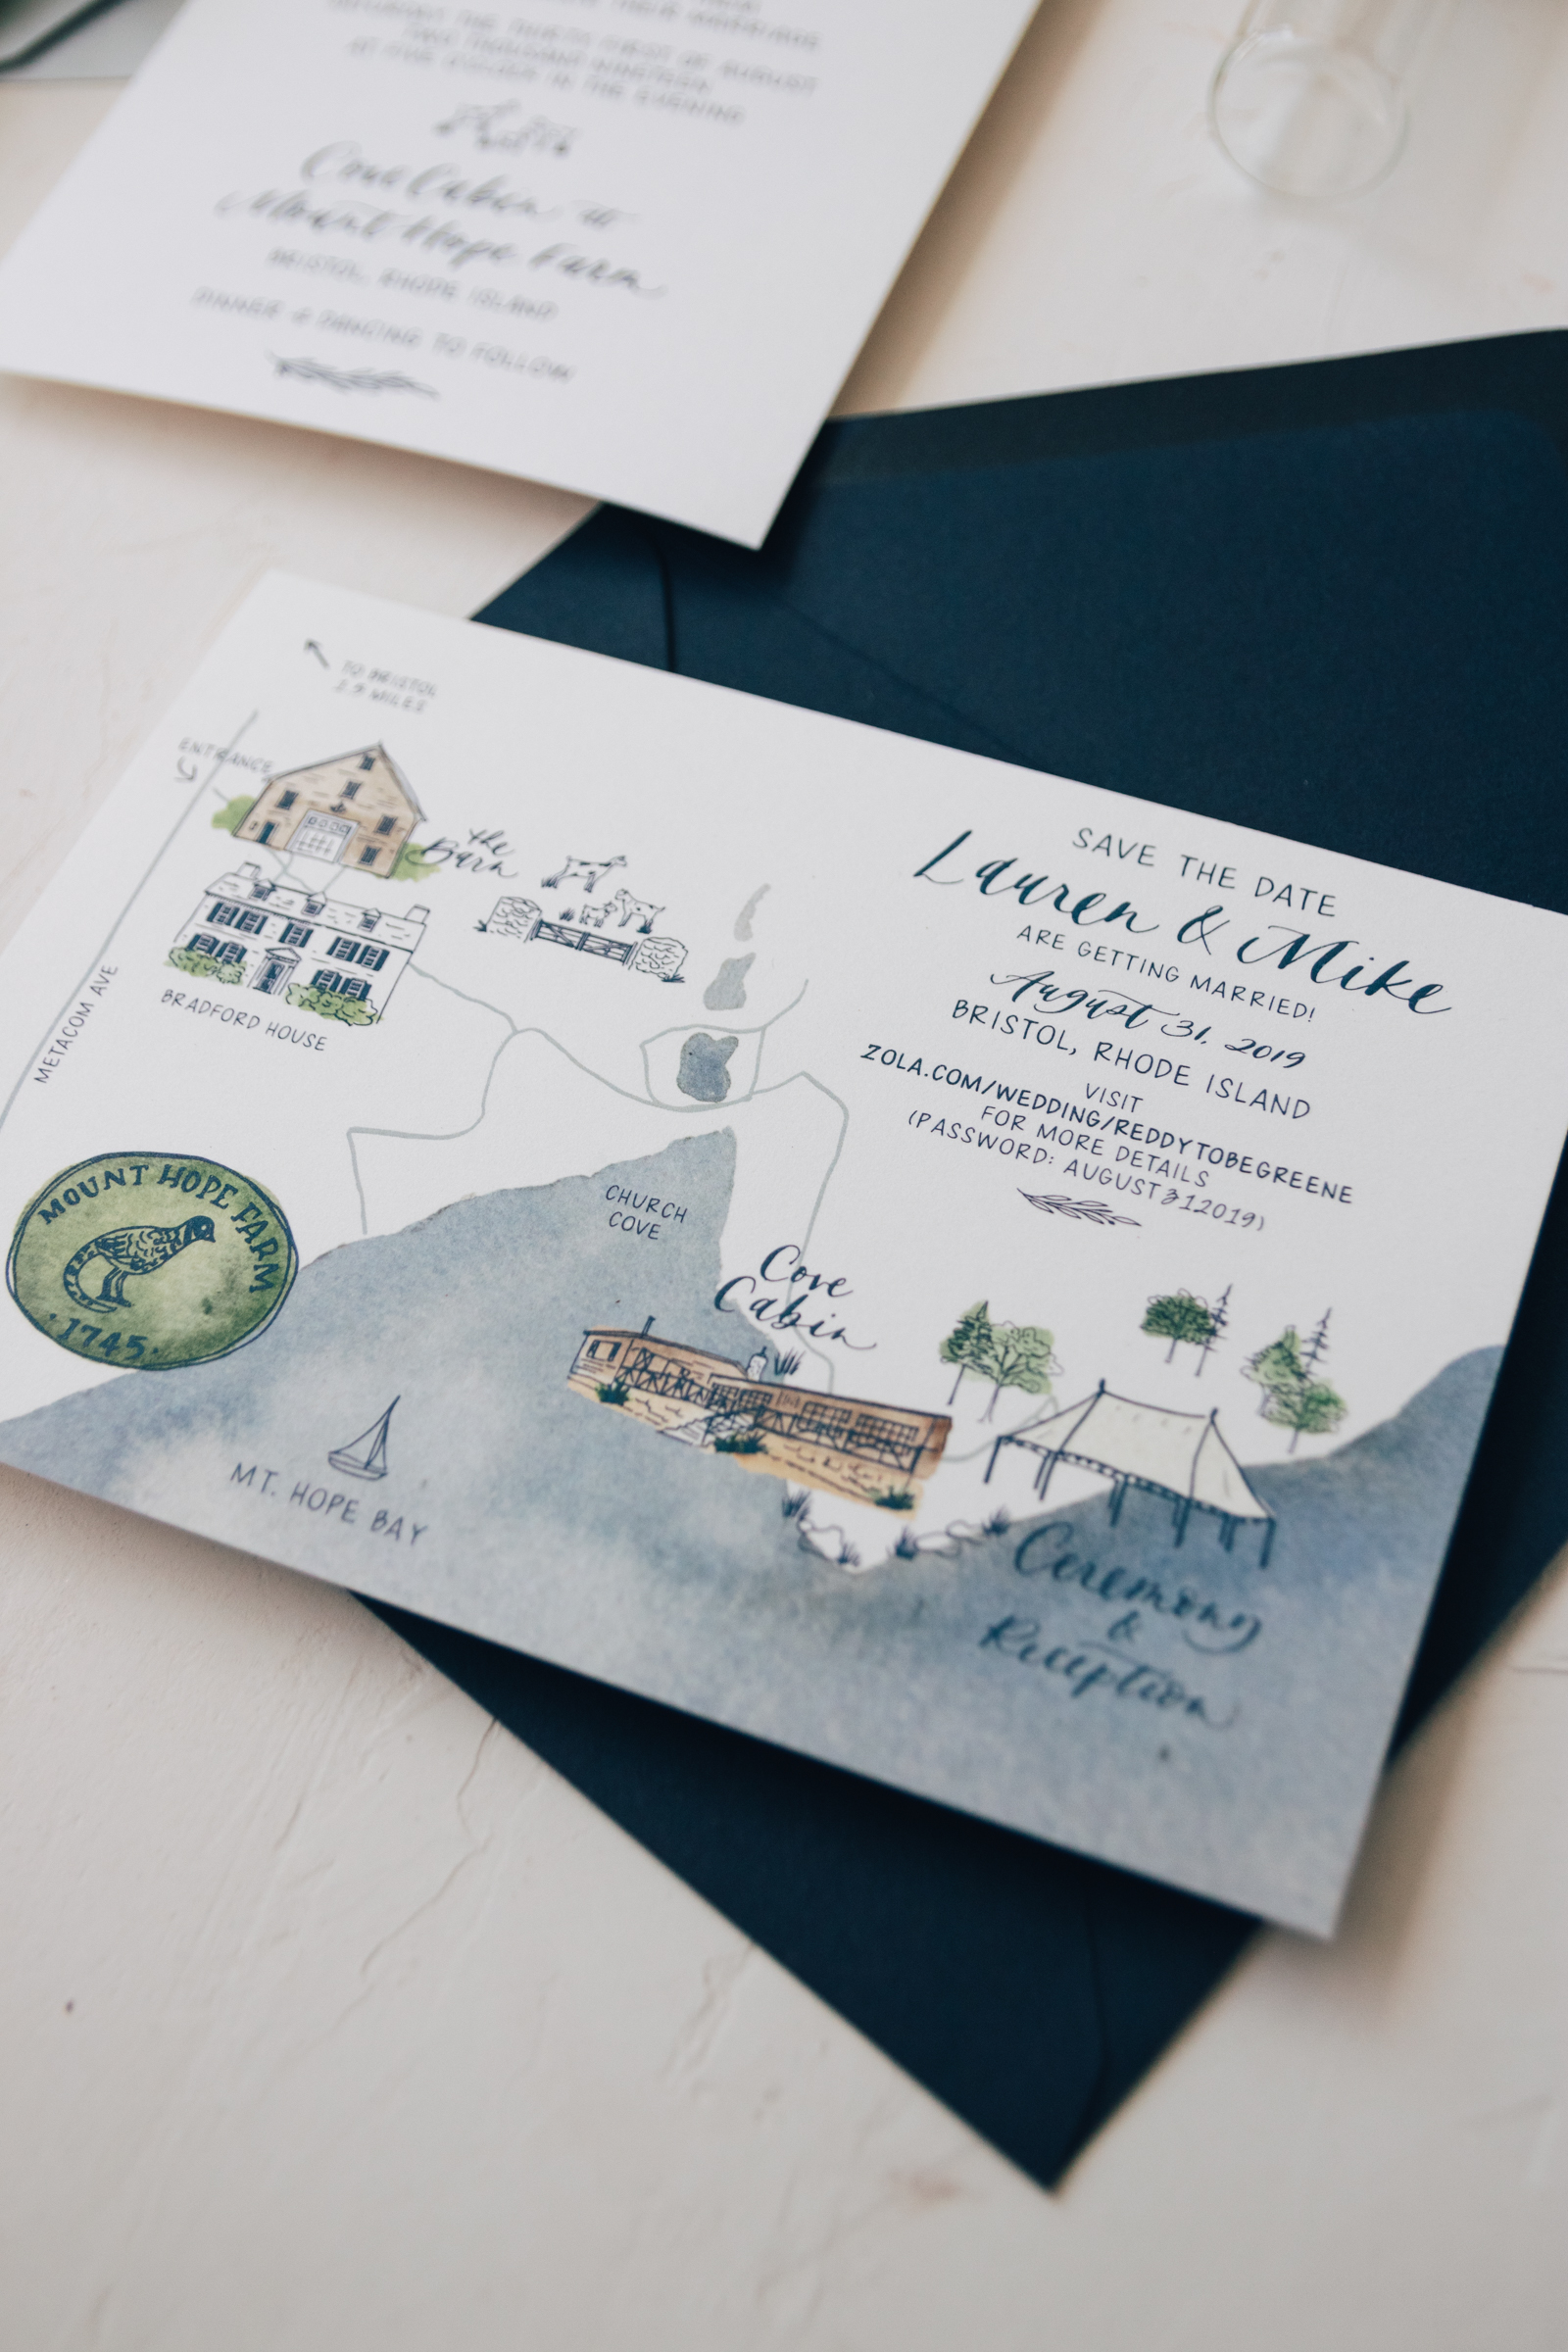 Watercolor Wedding Map for a Mt. Hope Bay Rhode Island Wedding